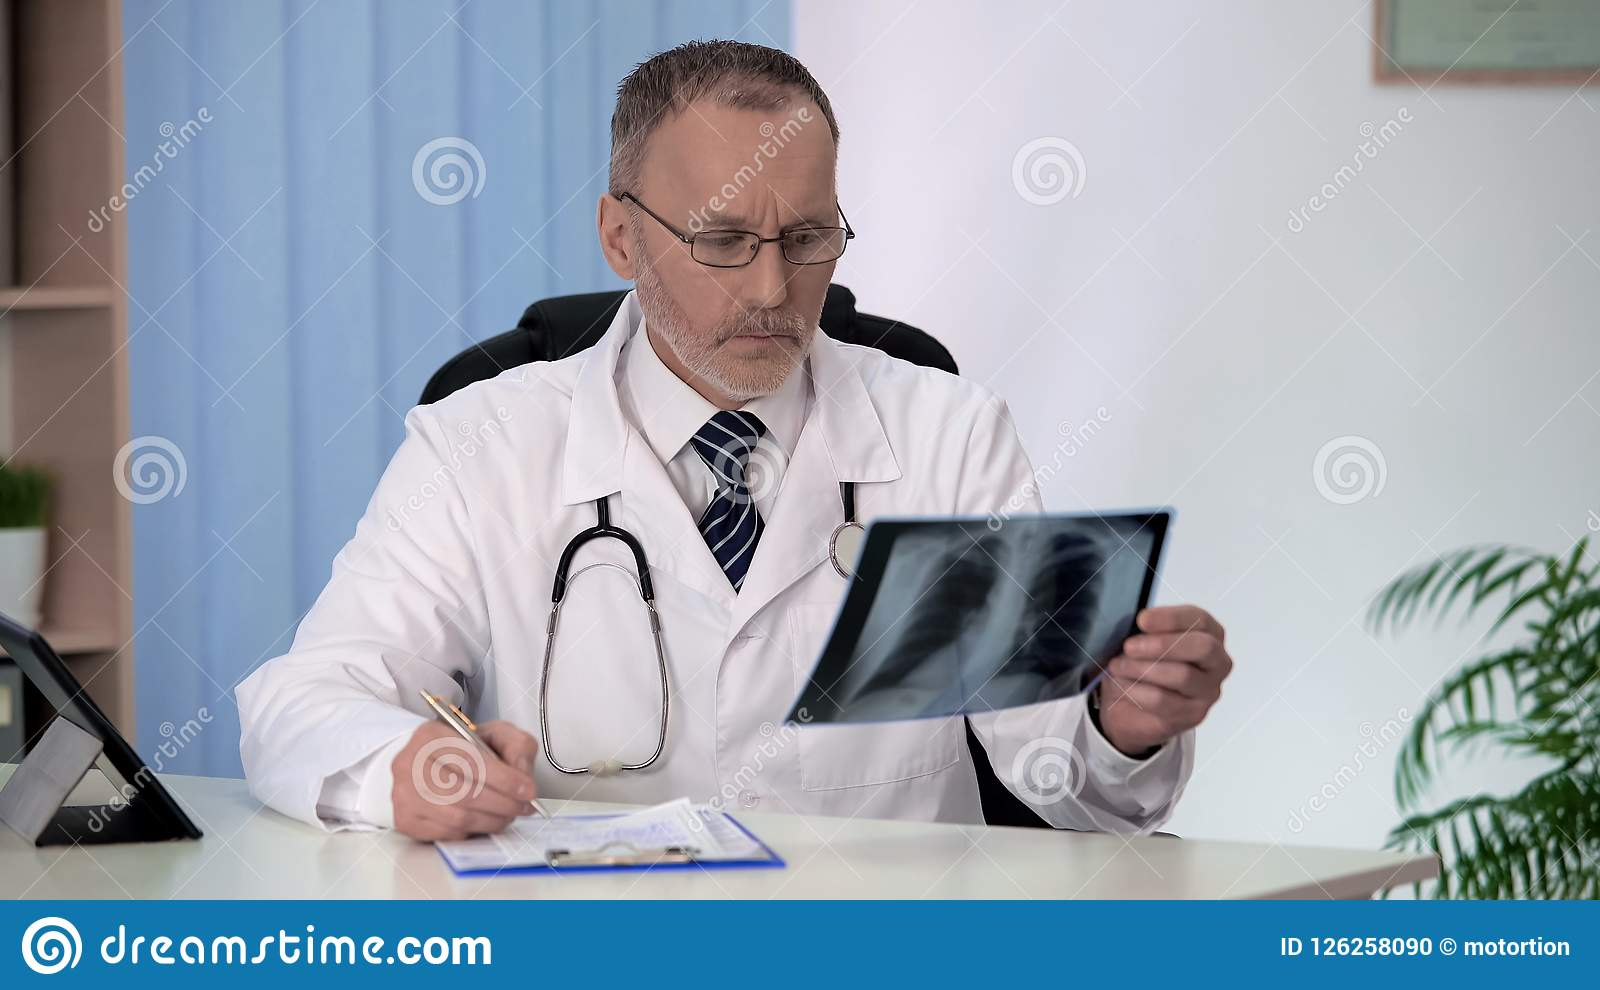 Doctor examining chest lung x-ray, filling patients medical form, flu epidemic